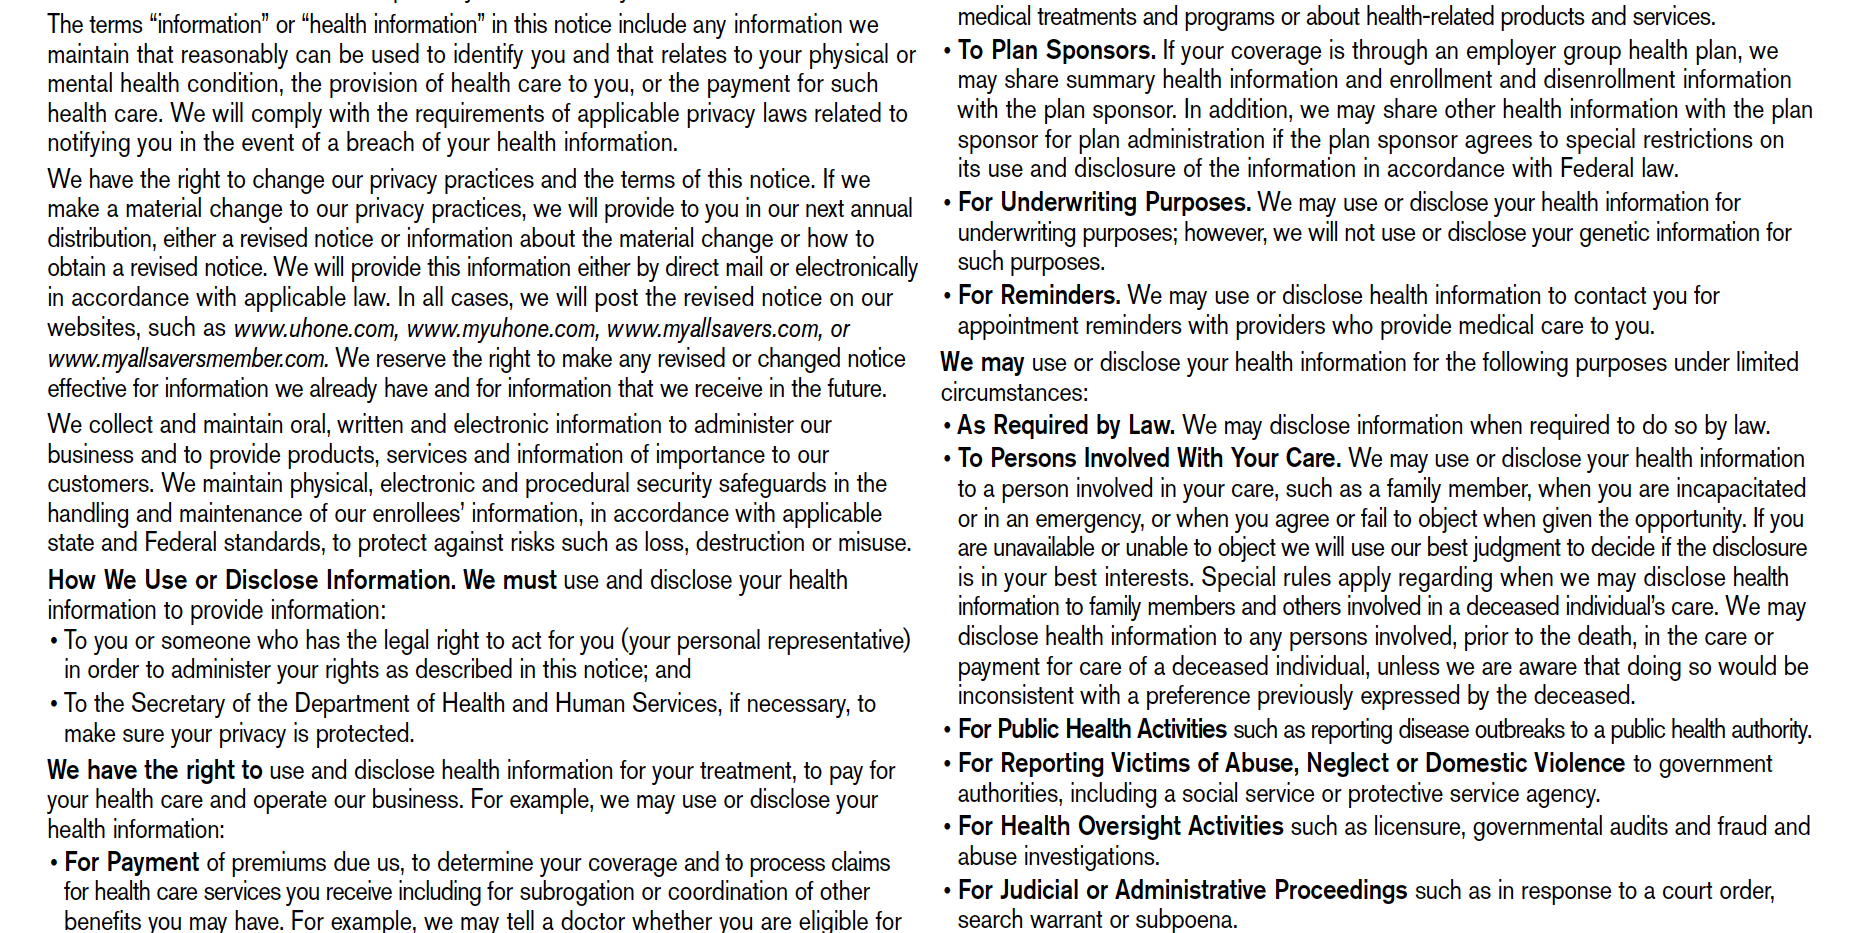 UHC Dental Brochure - Pg 13.png